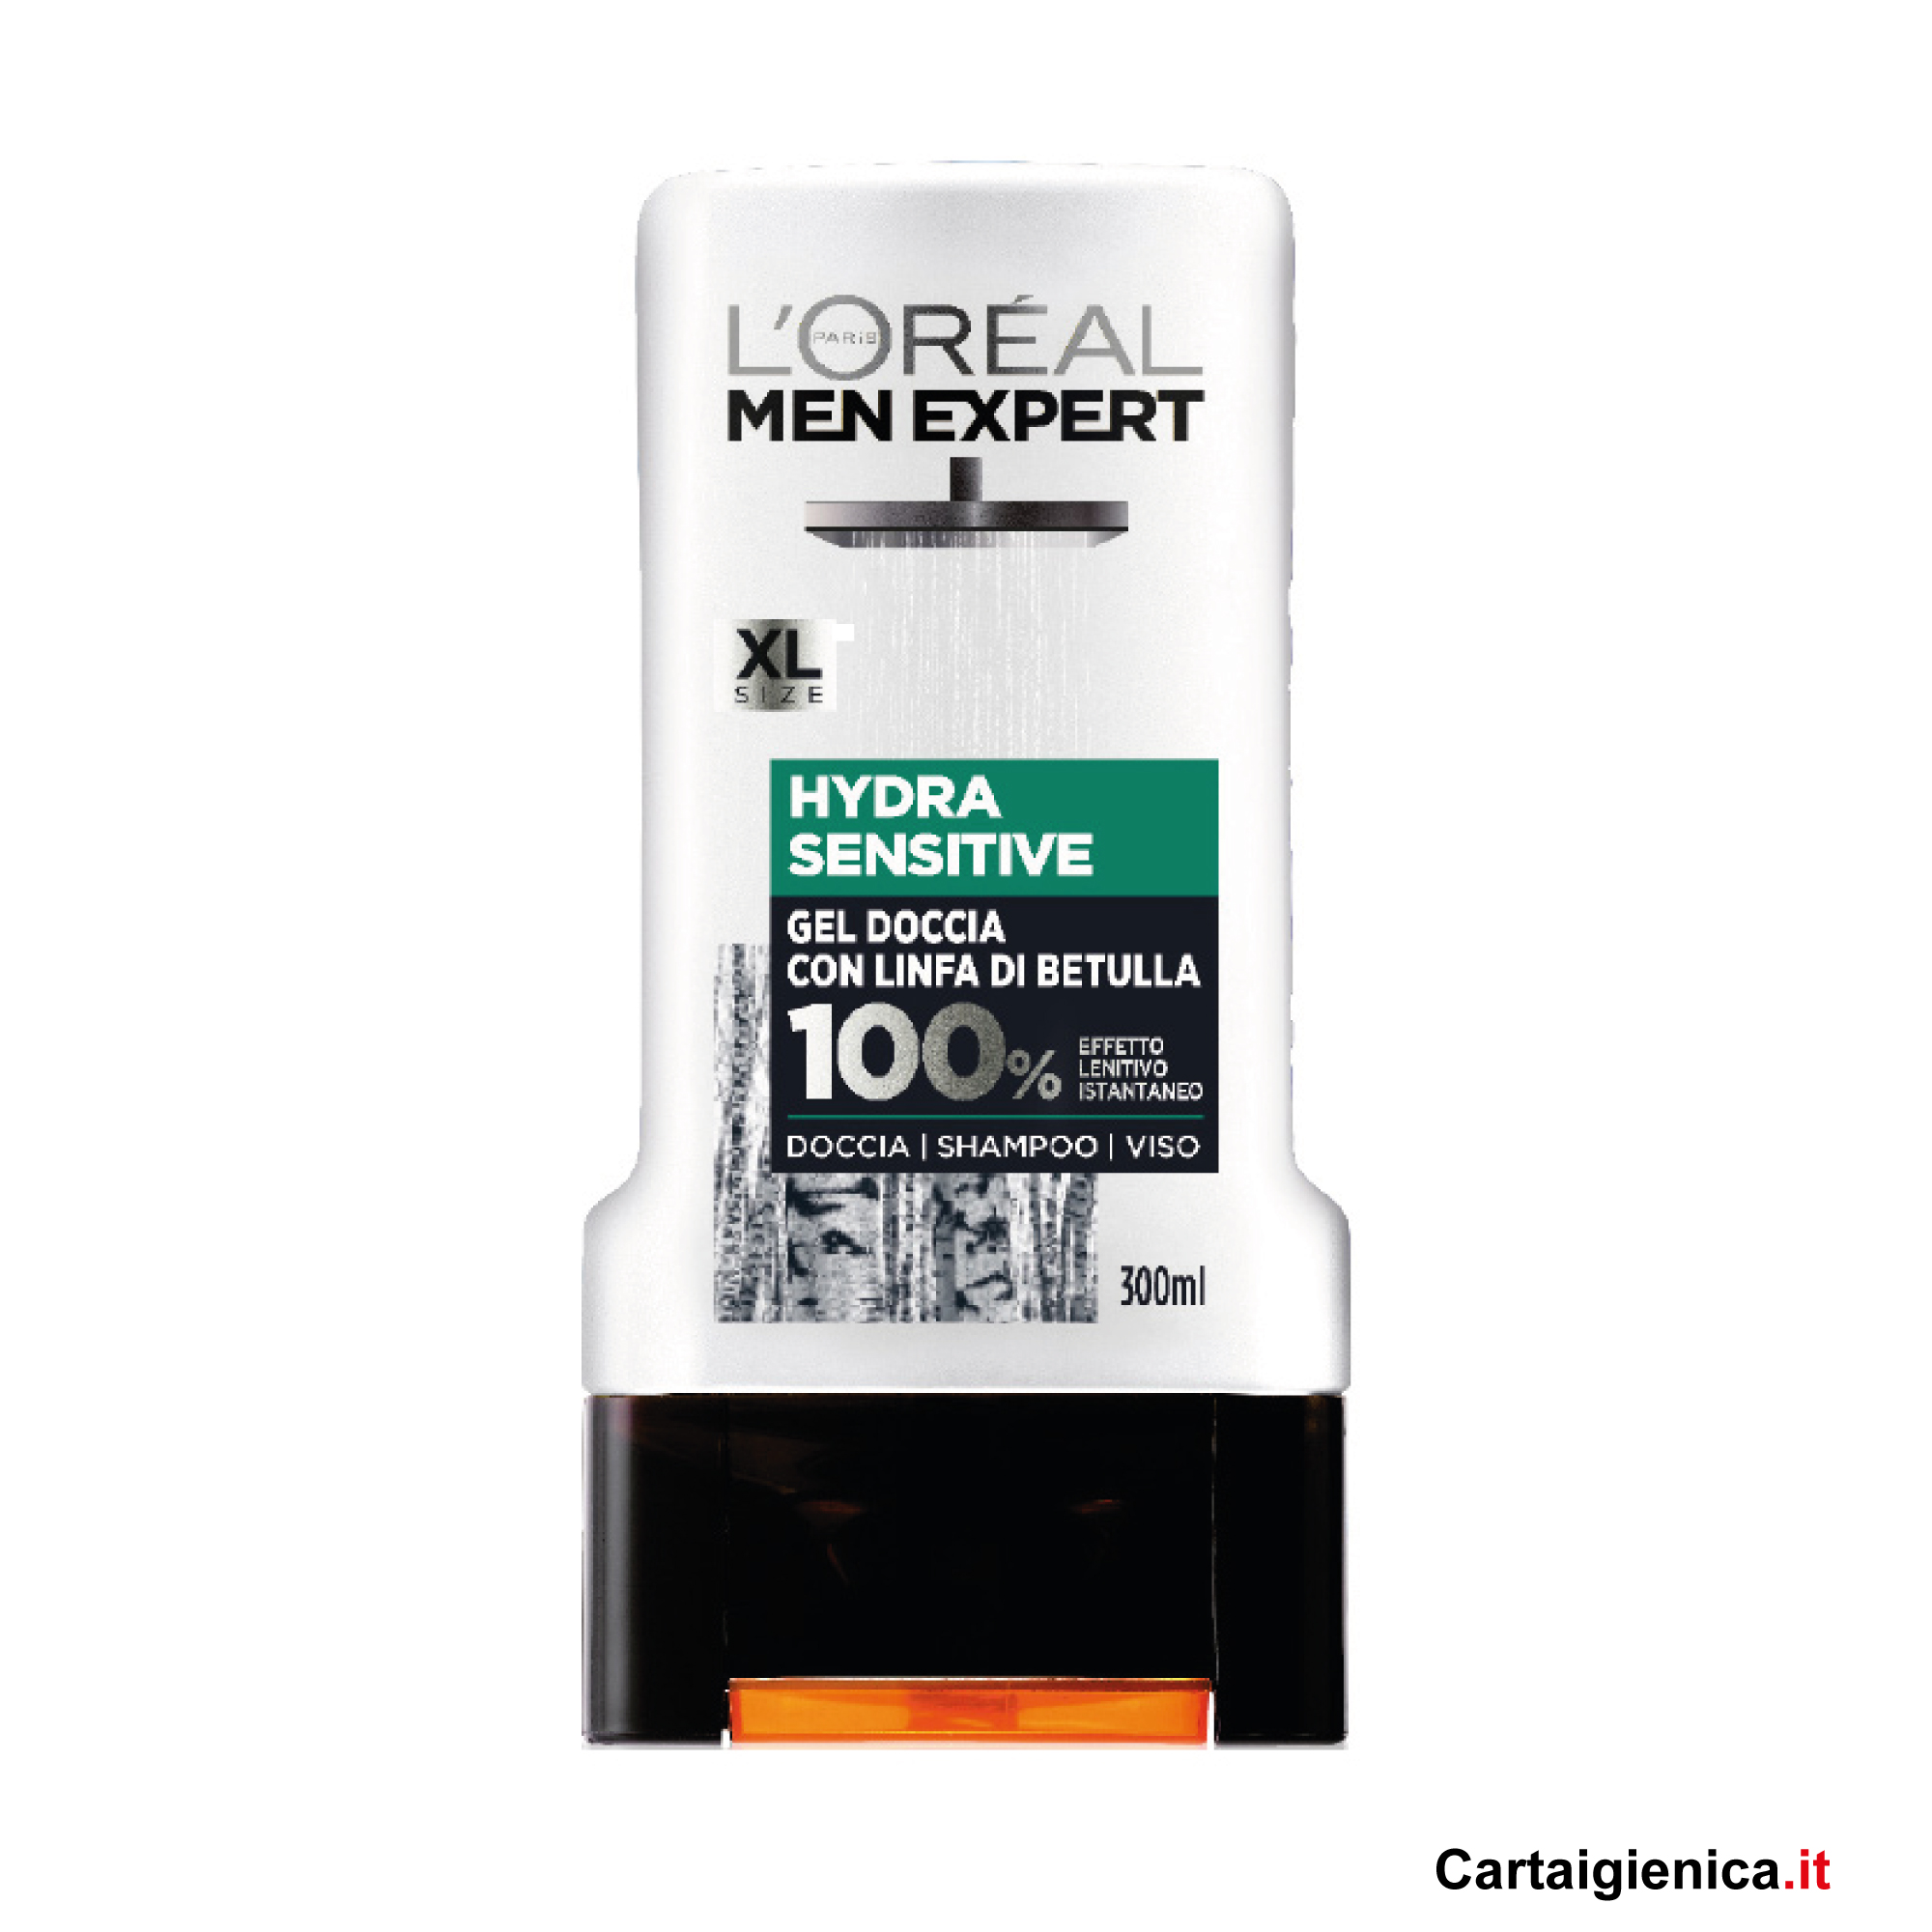 loreal men expert hydra sensitive gel doccia shampoo viso 300 ml